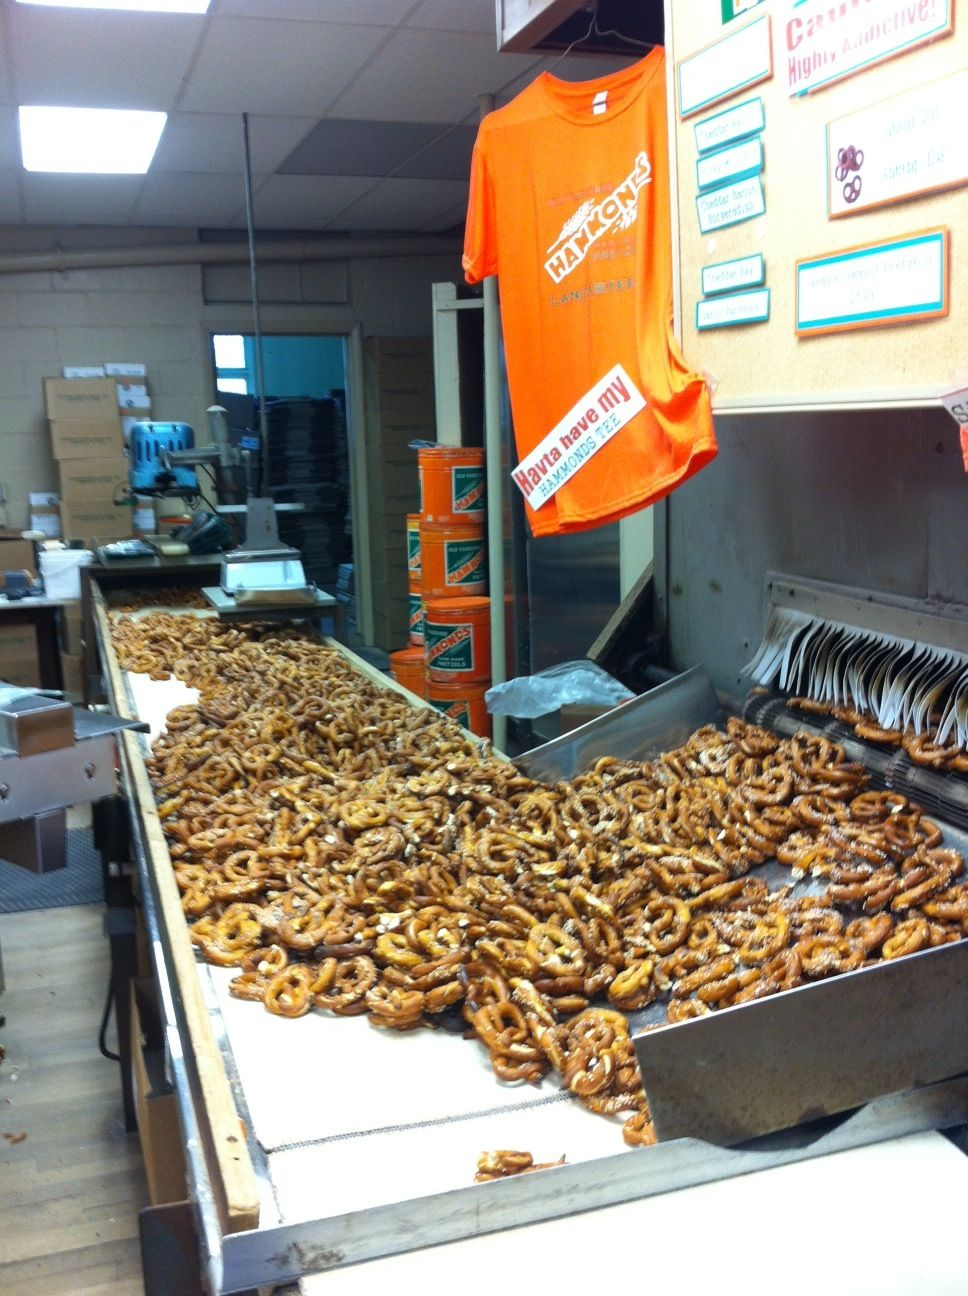 Hammond Pretzel Factory The Oldest Family Operated Hand Made Pretzel Bakery In America Opened In Lancaster County Amish Lancaster County Pa Lancaster County